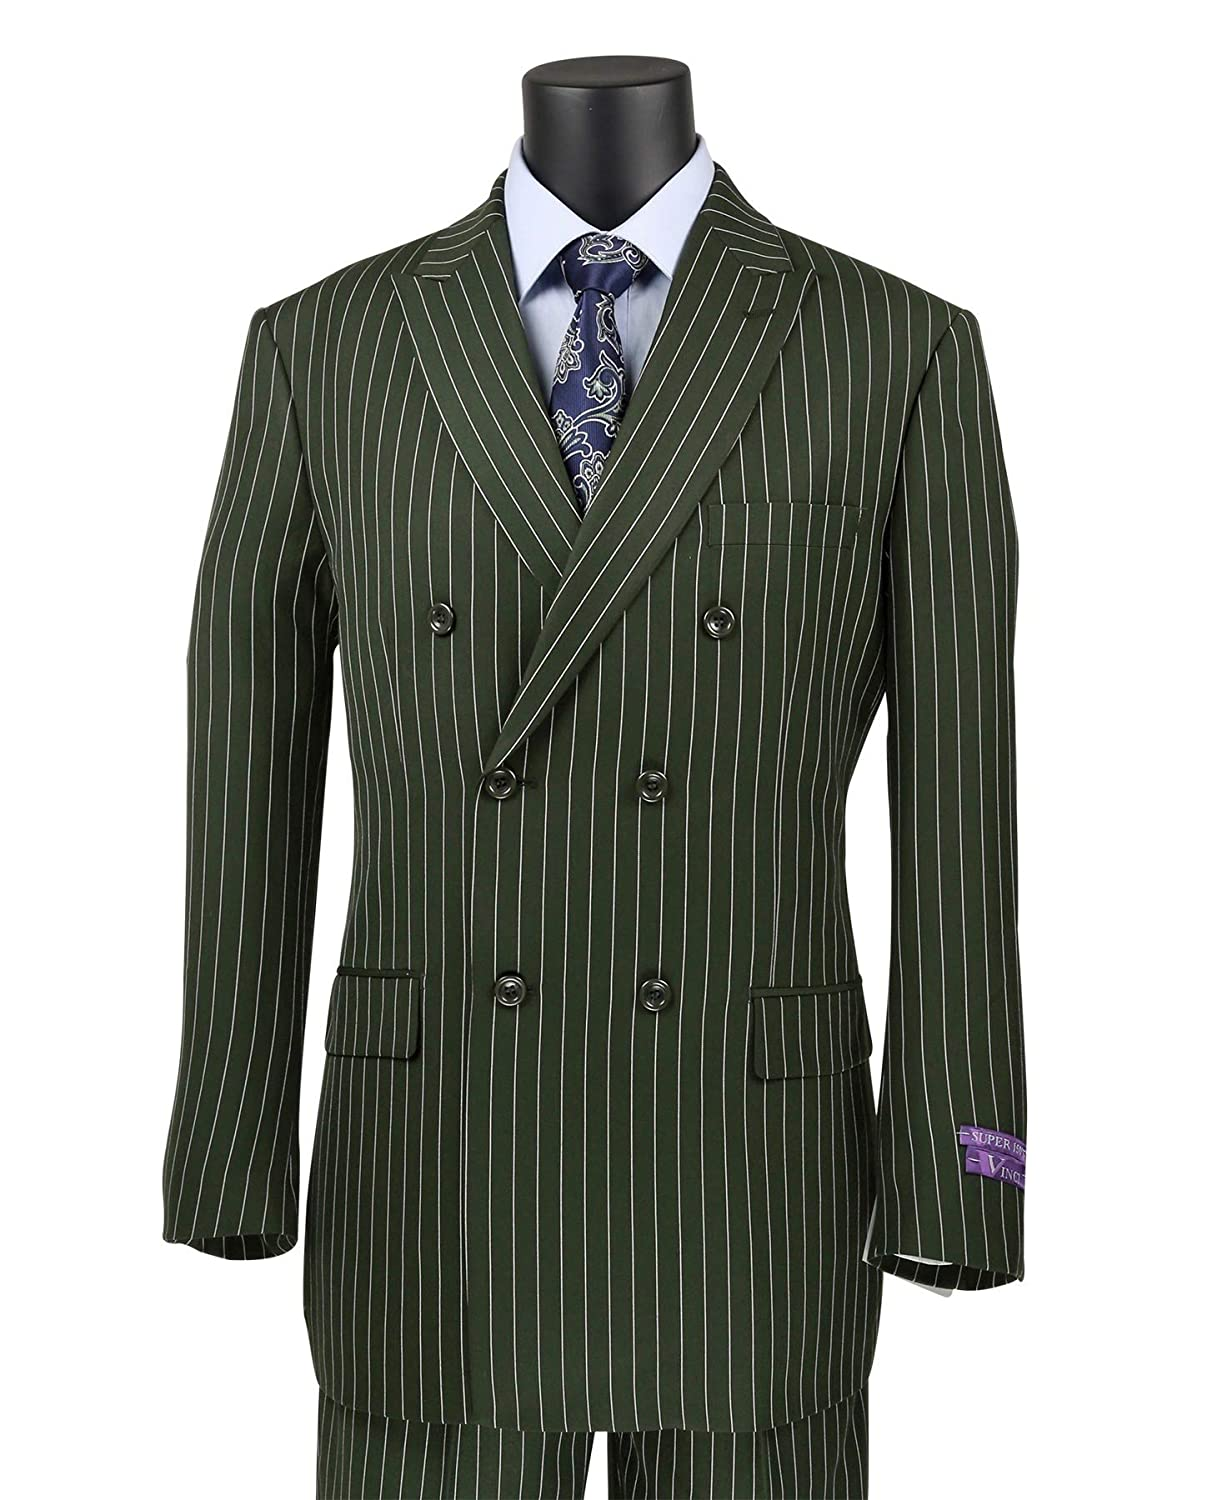 1940s Mens Suits | Gangster, Mobster, Zoot Suits VINCI Mens Gangster Pinstriped Double Breasted 6 Button Classic-Fit Suit New $119.95 AT vintagedancer.com